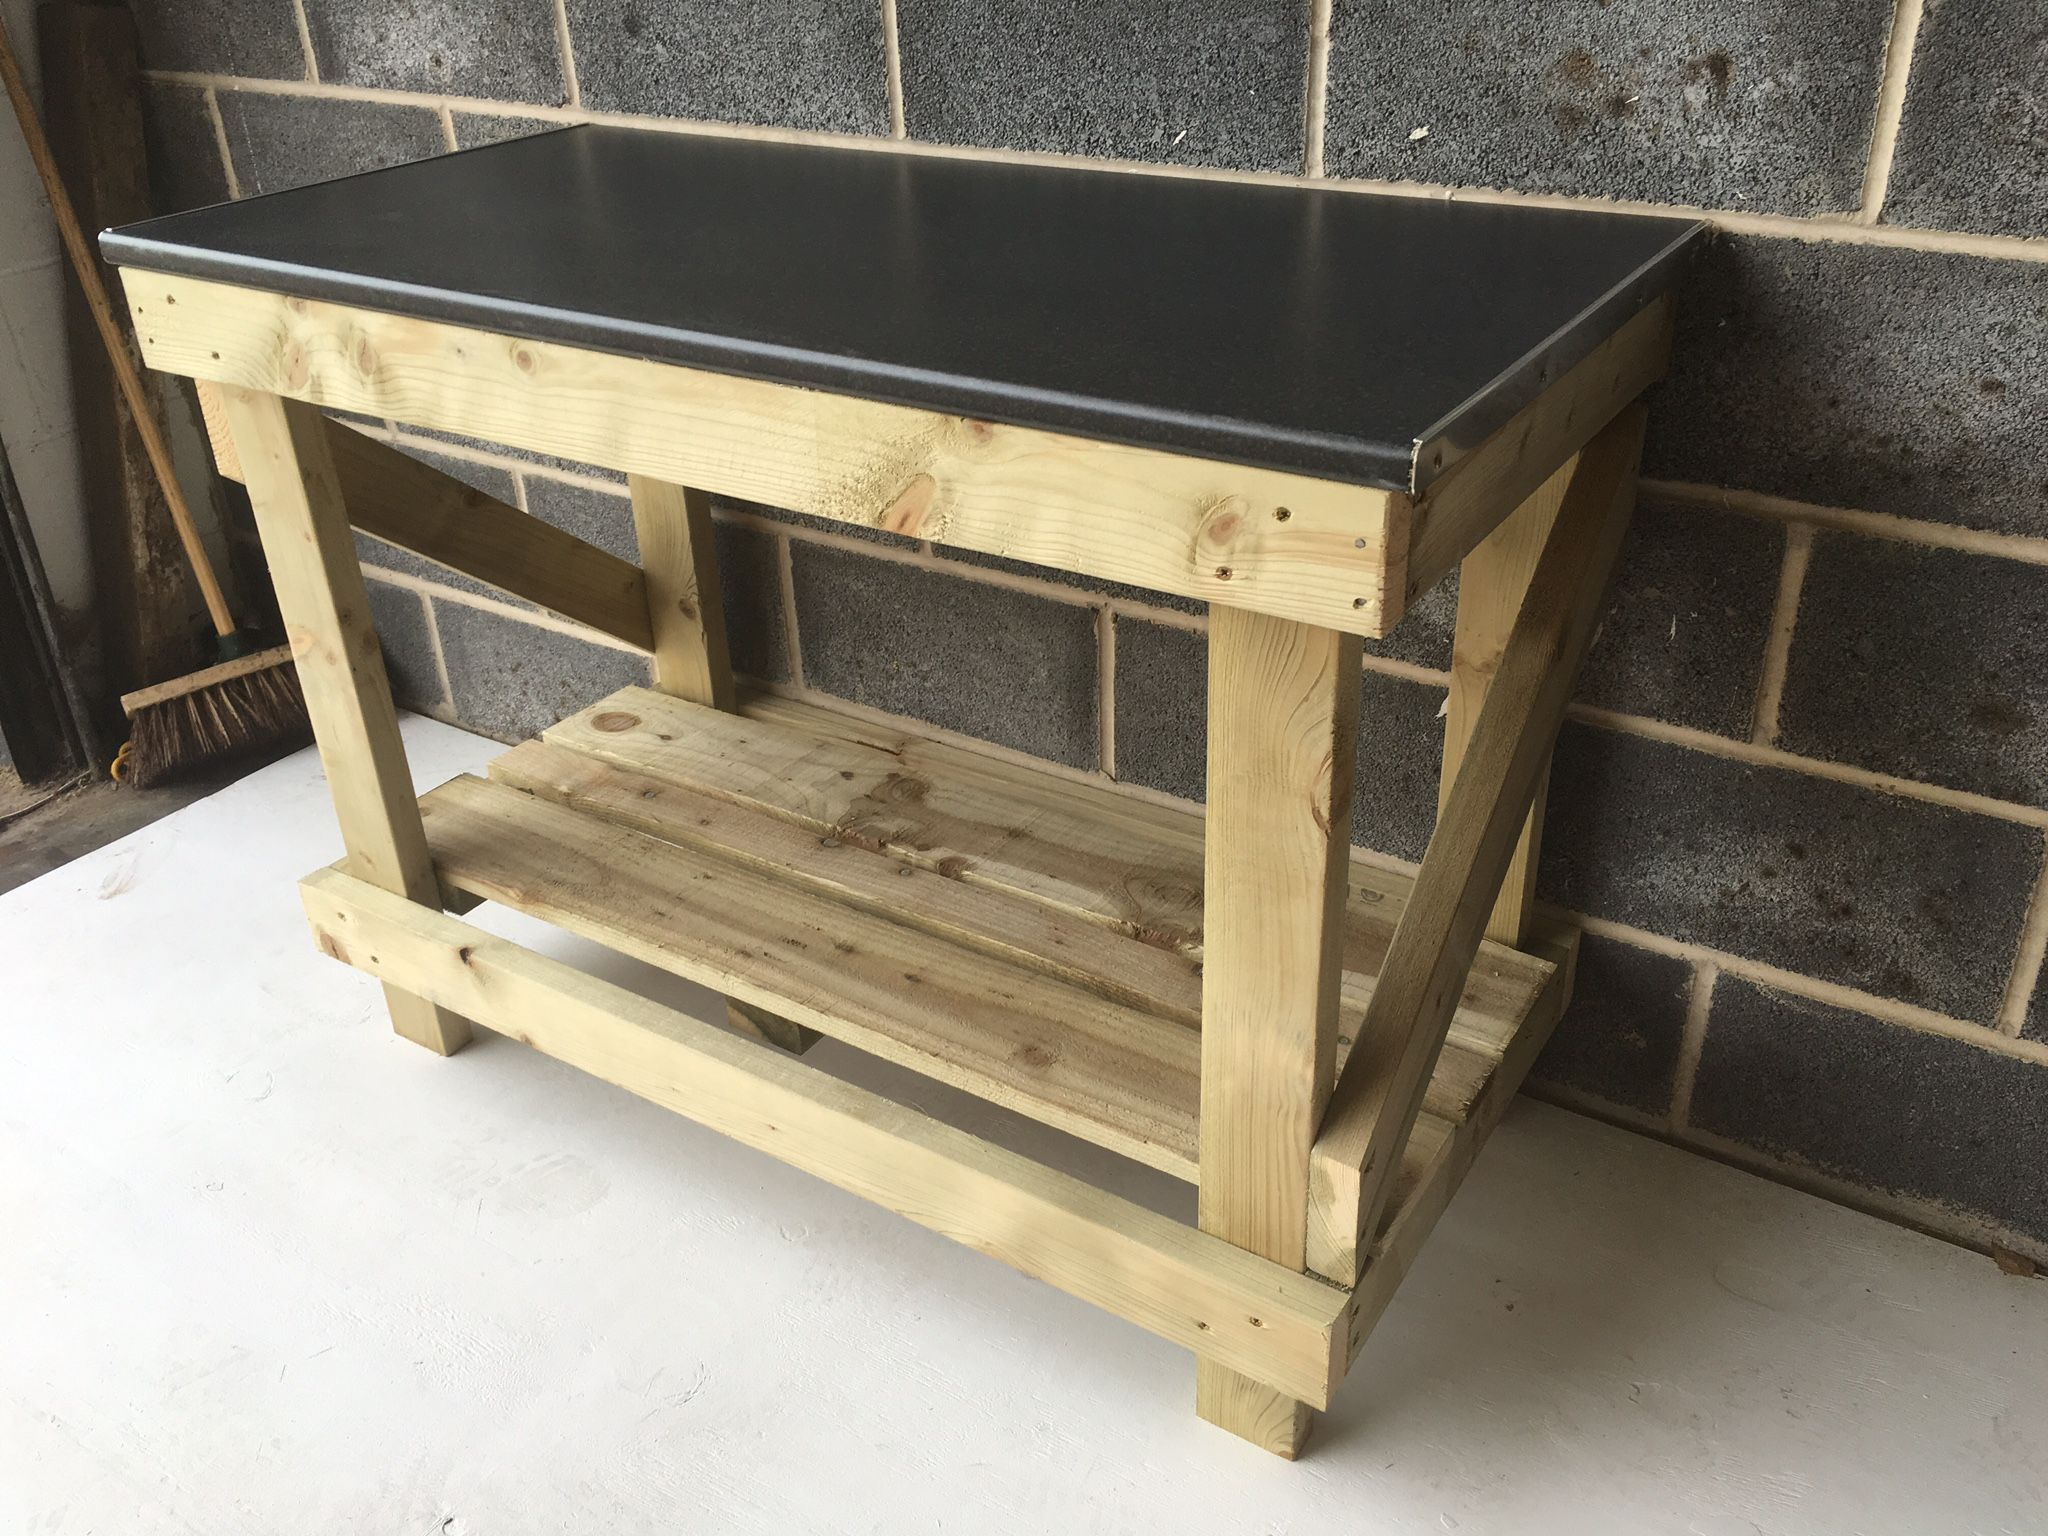 We Are A Family Business That Manufacture And Sells Quality Timber Products  These Include Picnic Tables ,Work Benches, Garden Decking, Farmhouse Style  Oak ...